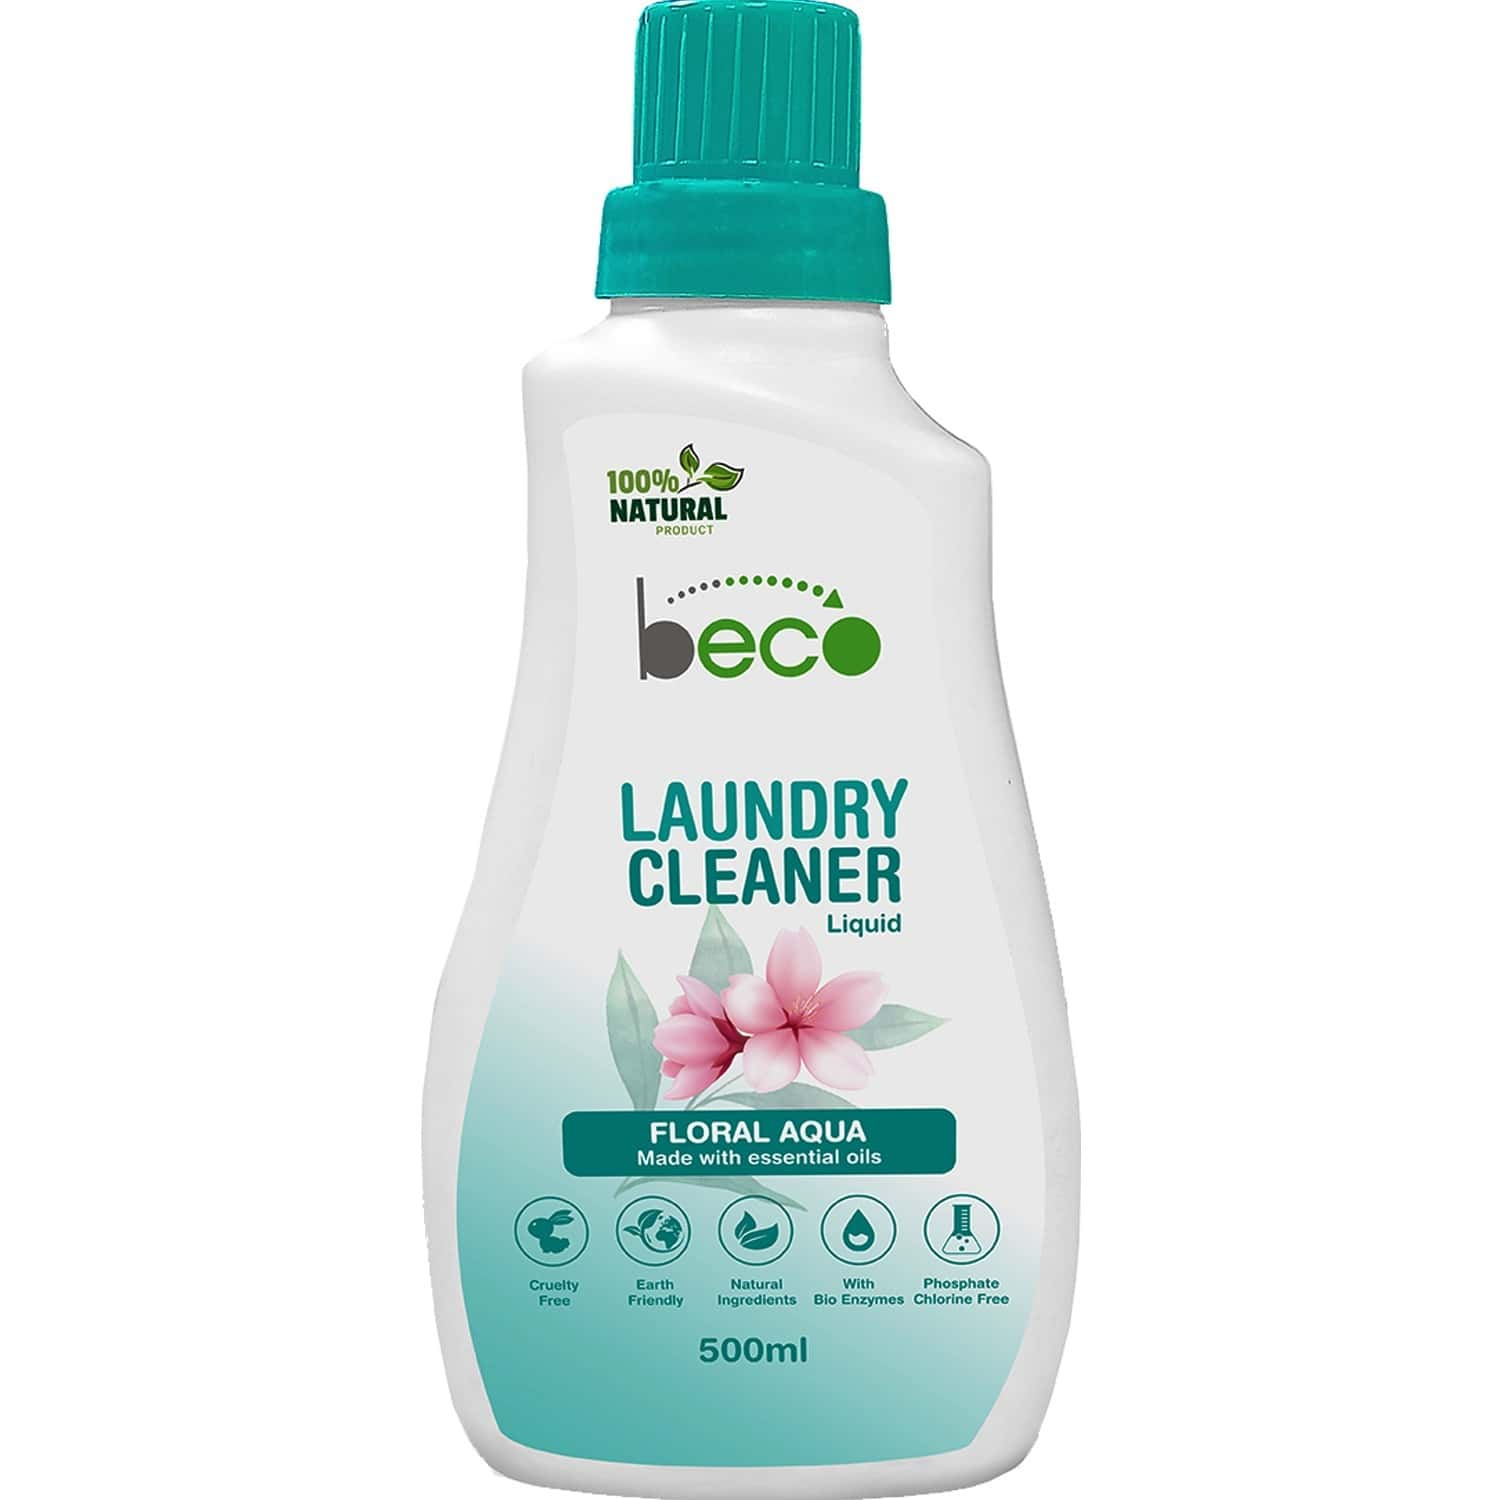 Beco Natural Laundry Detergent Liquid 500ml- Baby Safe